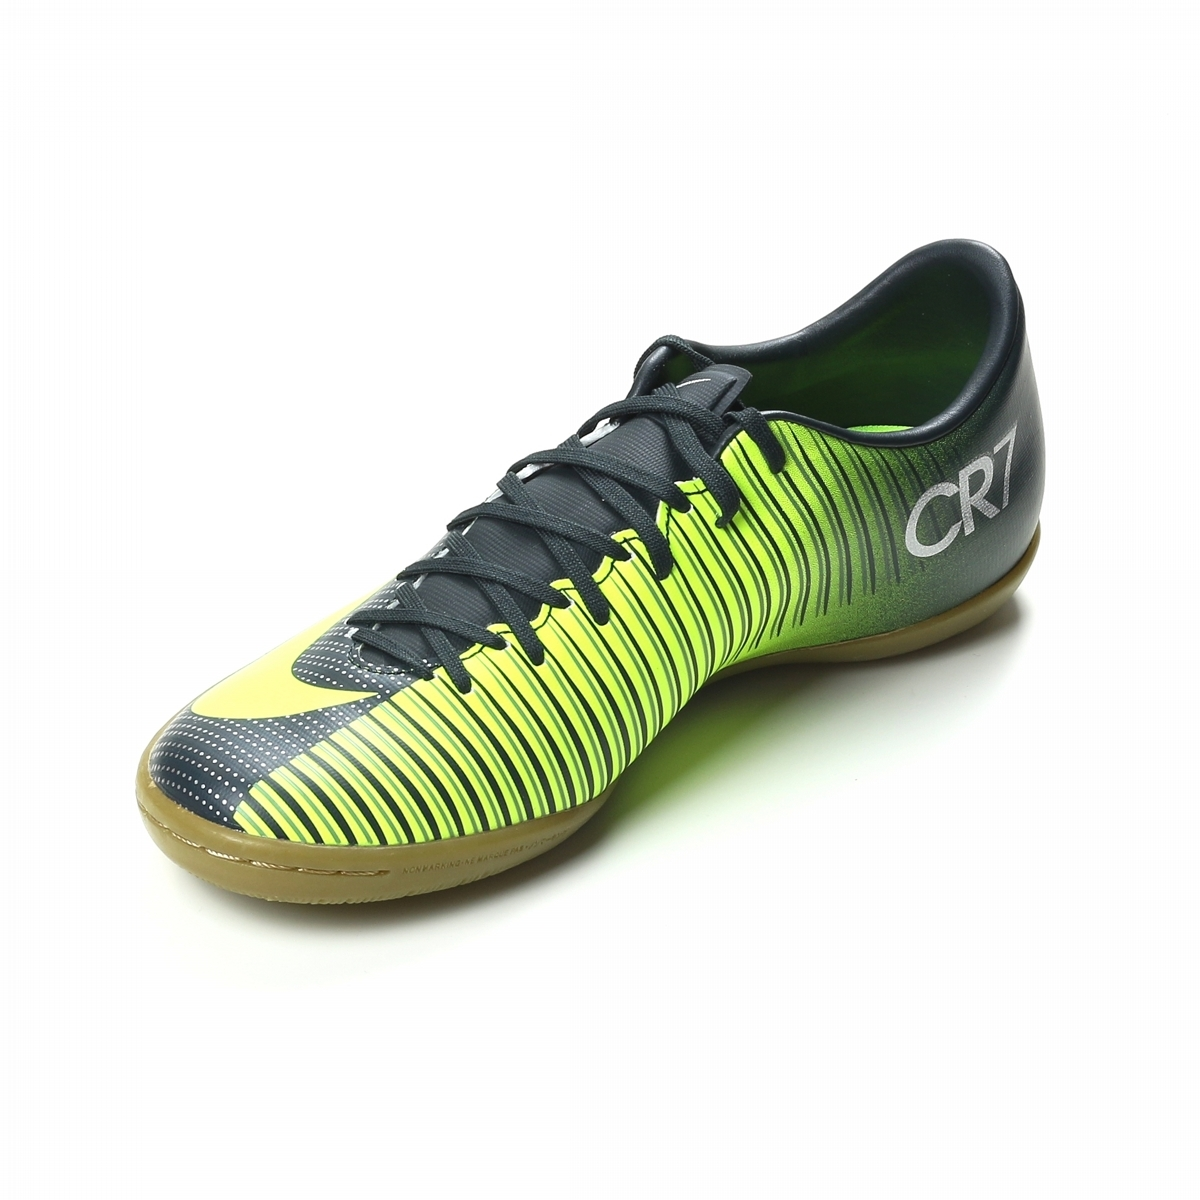 605ed21e3 Nike Mercurial Victory VI CR7 IC Indoor Soccer Shoes (Seaweed Volt Hasta  White)